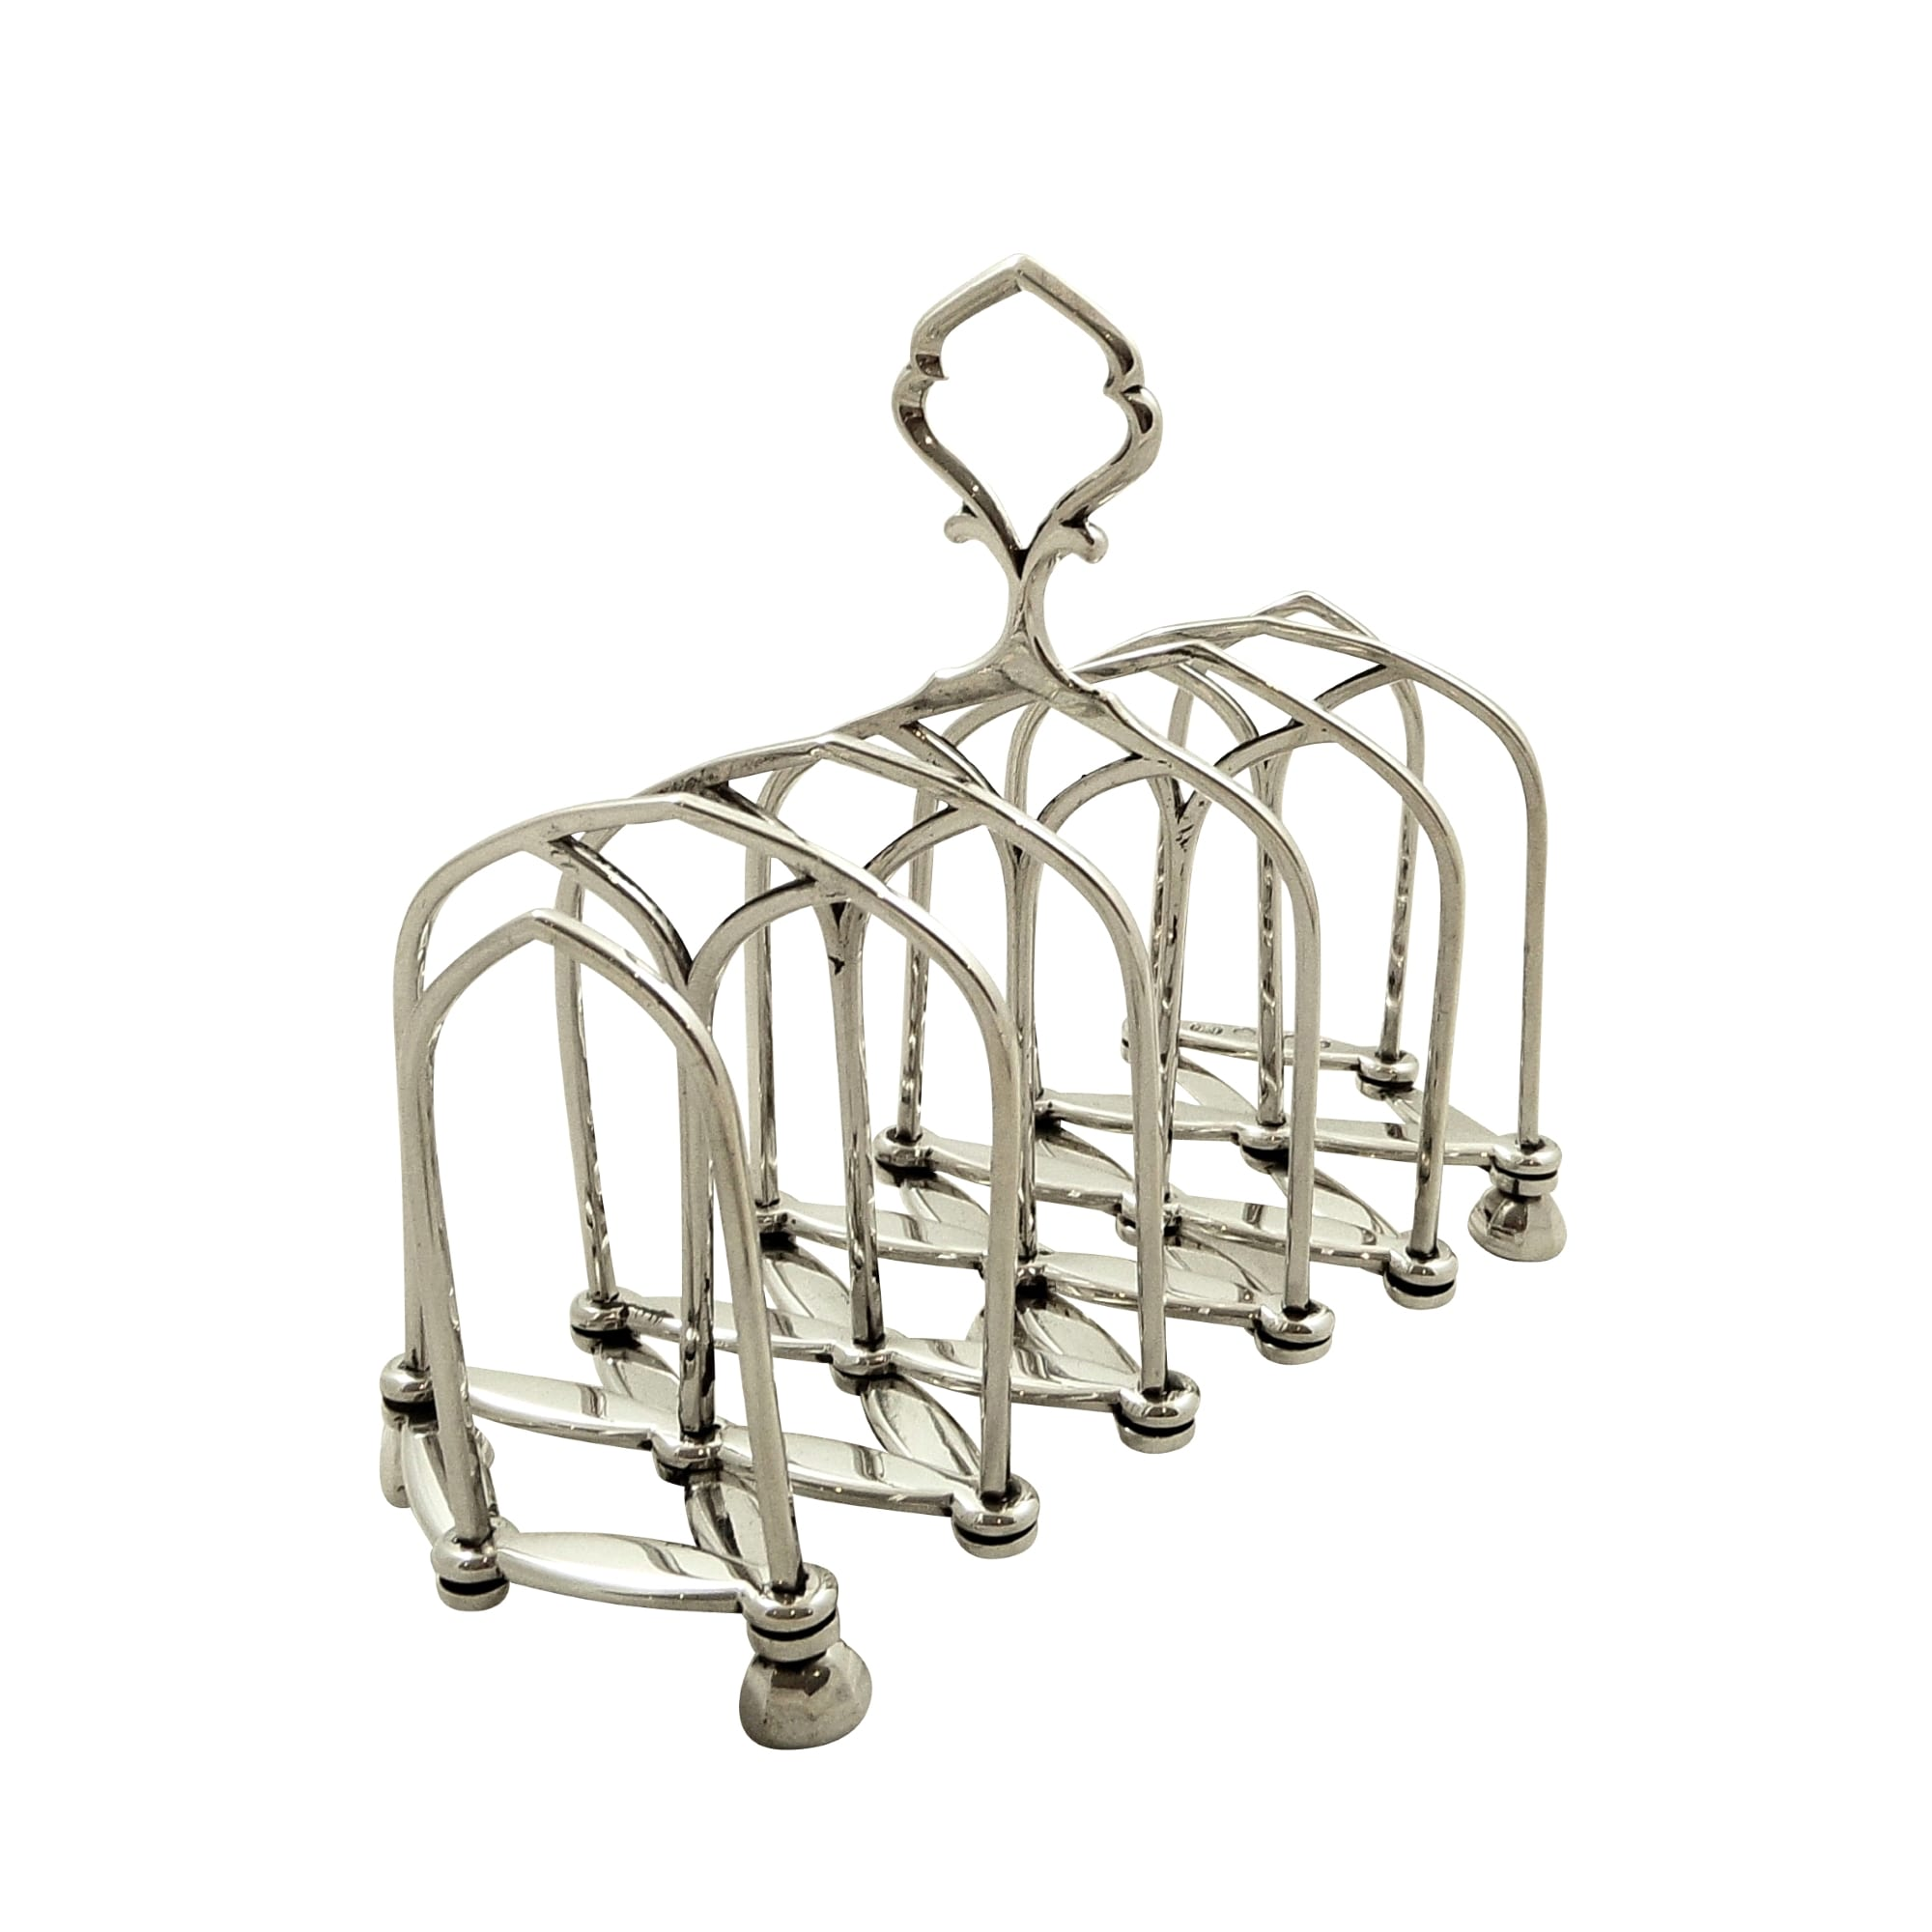 Unusual Antique Victorian Sterling Silver Expanding Toast Rack 1880